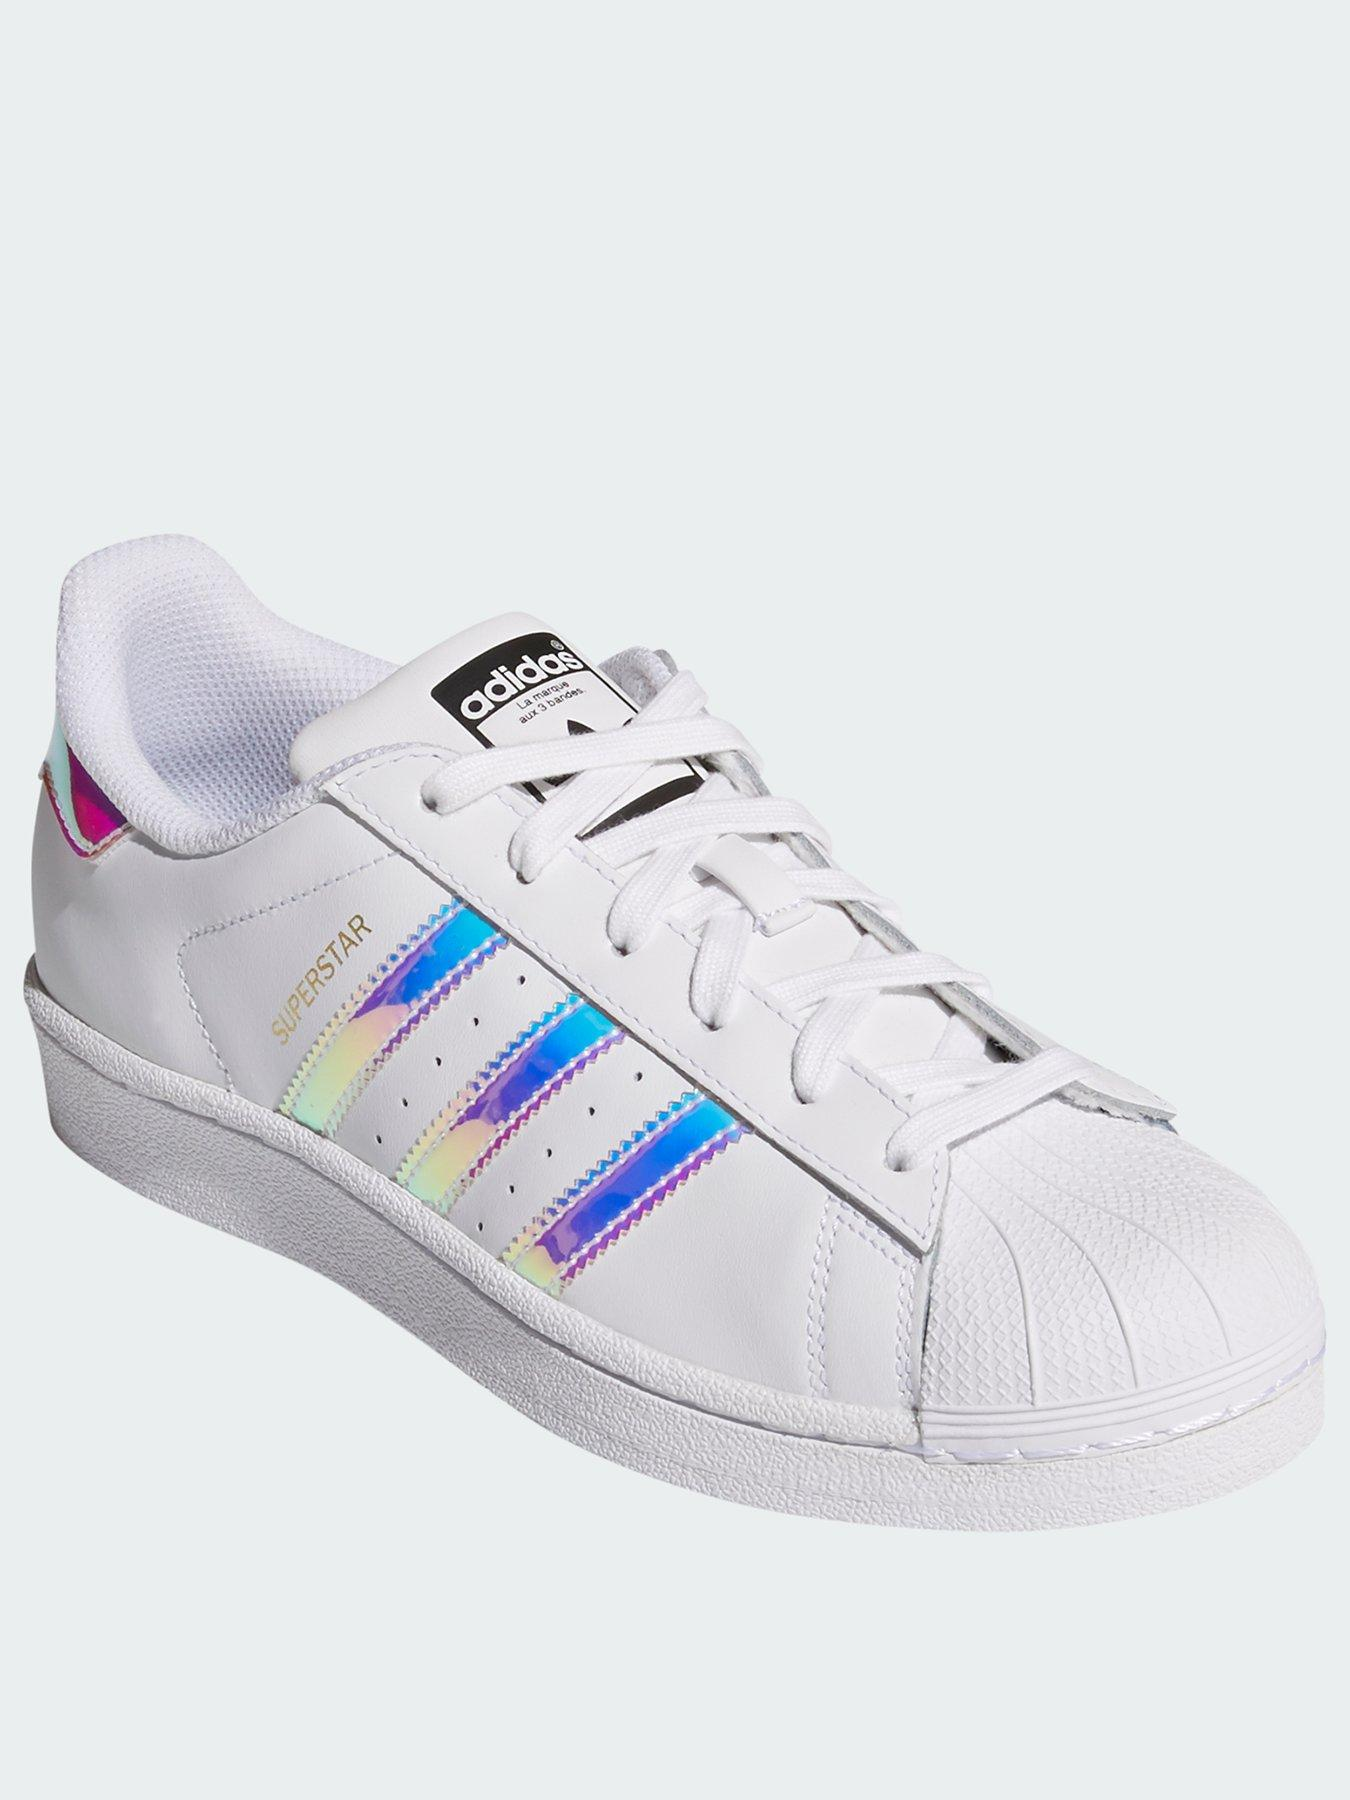 adidas trainers for girls size 6